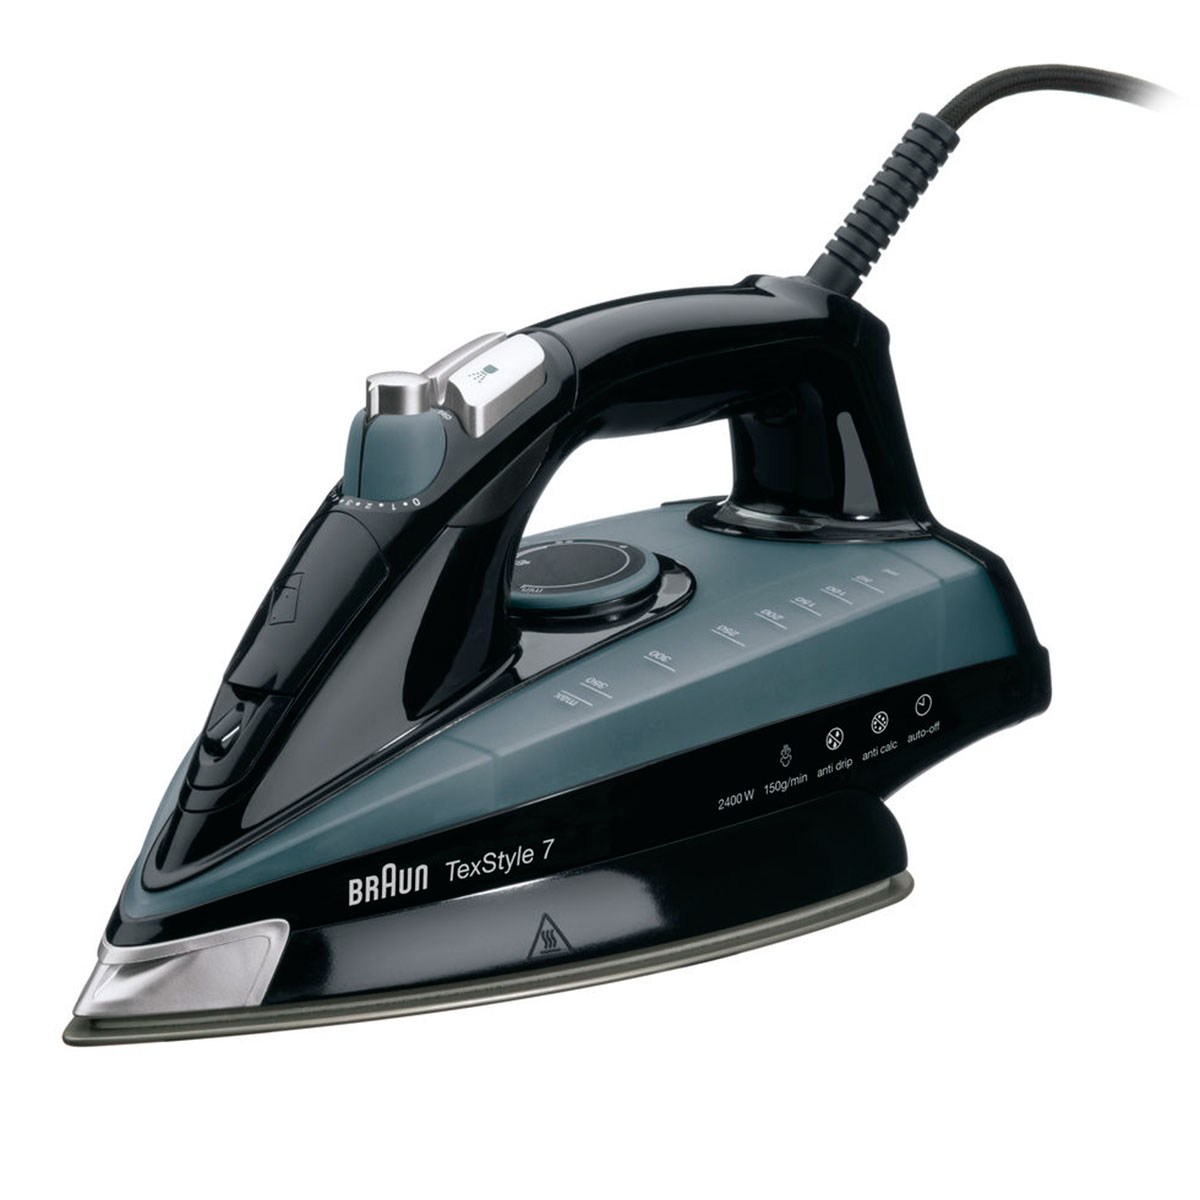 Pick up right steam iron box for your home